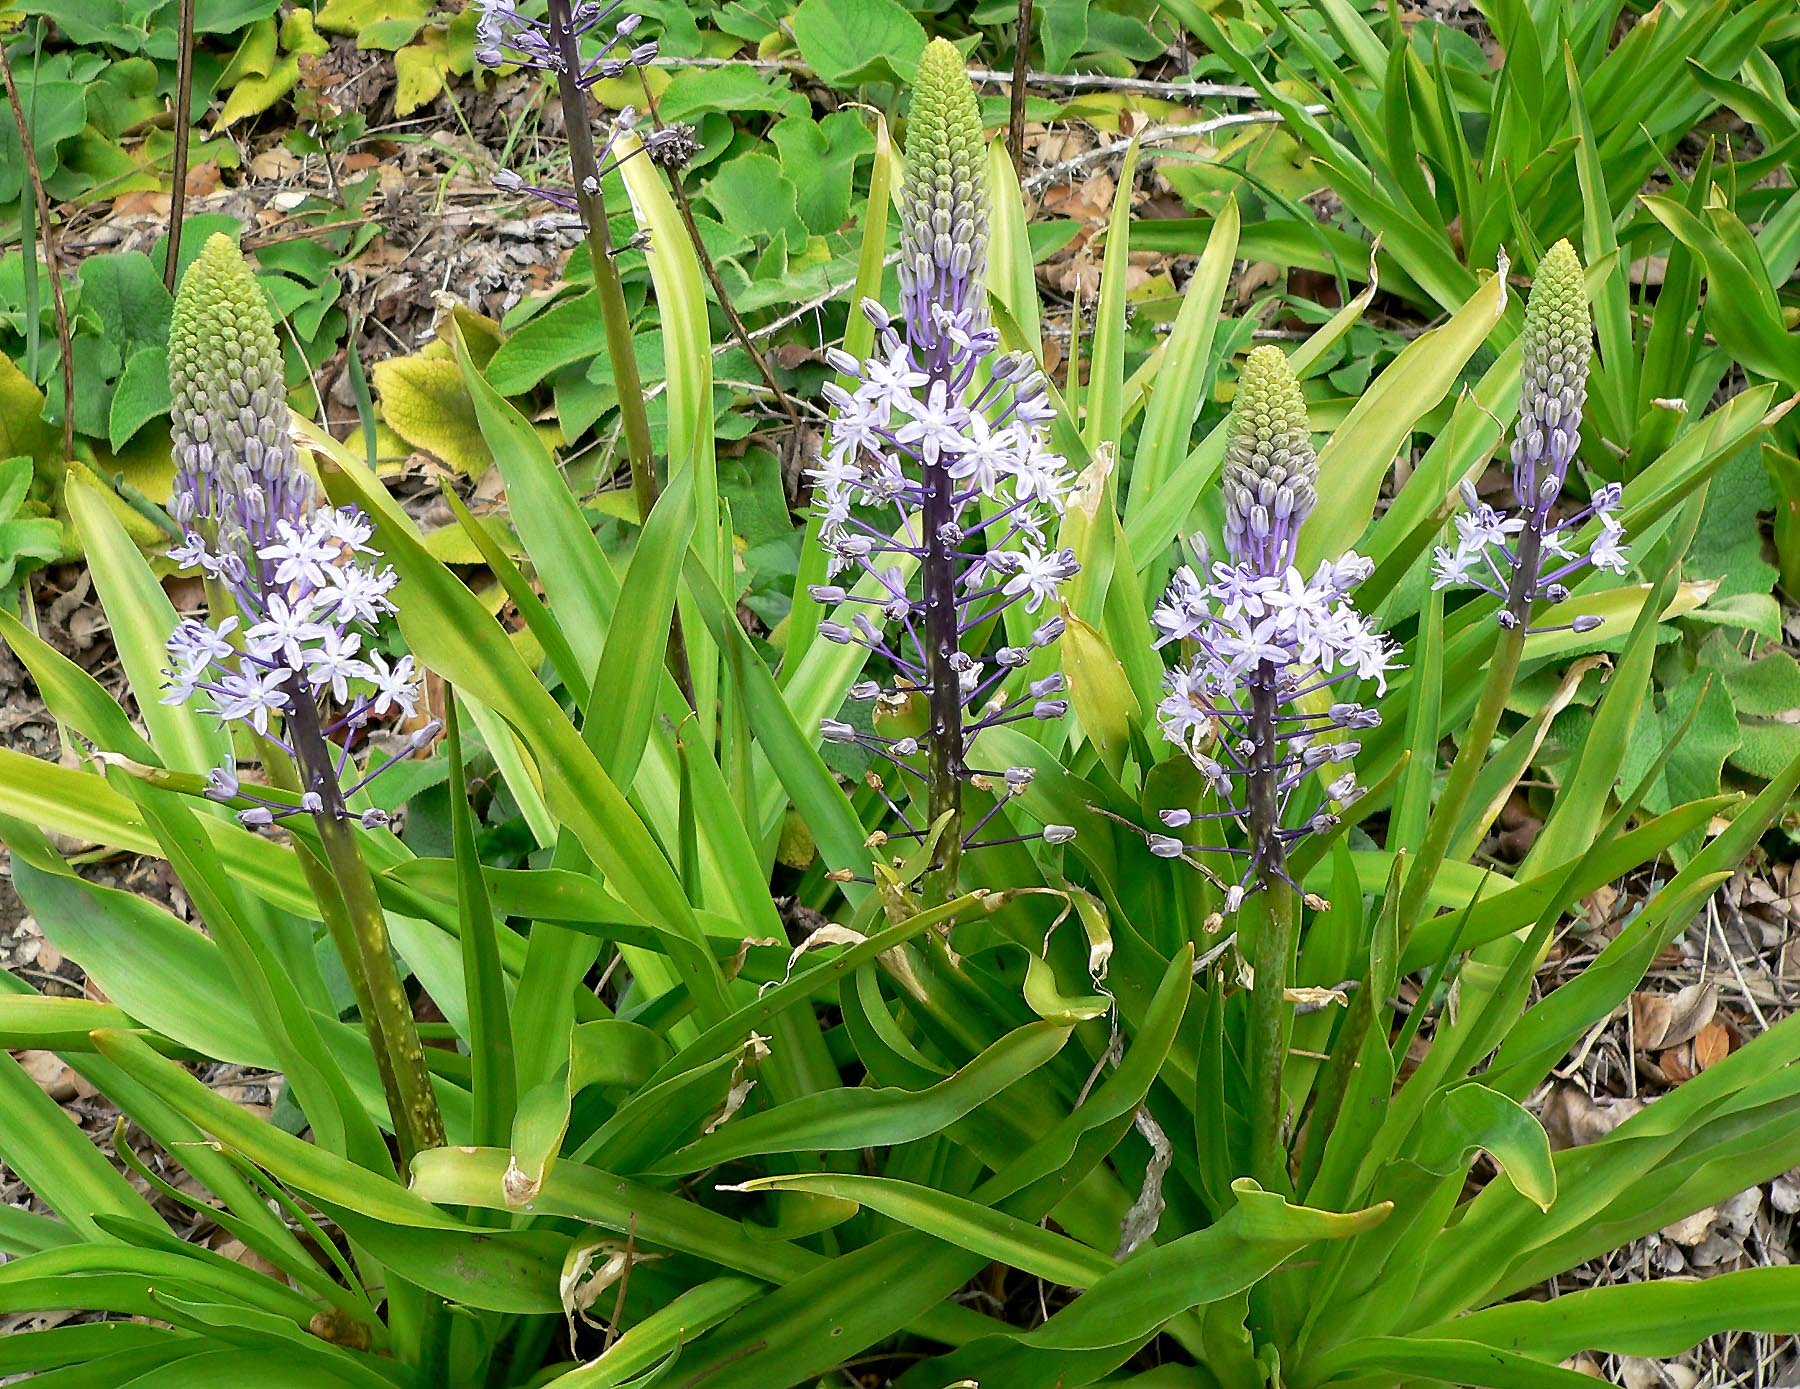 https://upload.wikimedia.org/wikipedia/commons/f/f7/Scilla_hyacinthoides_2.jpg